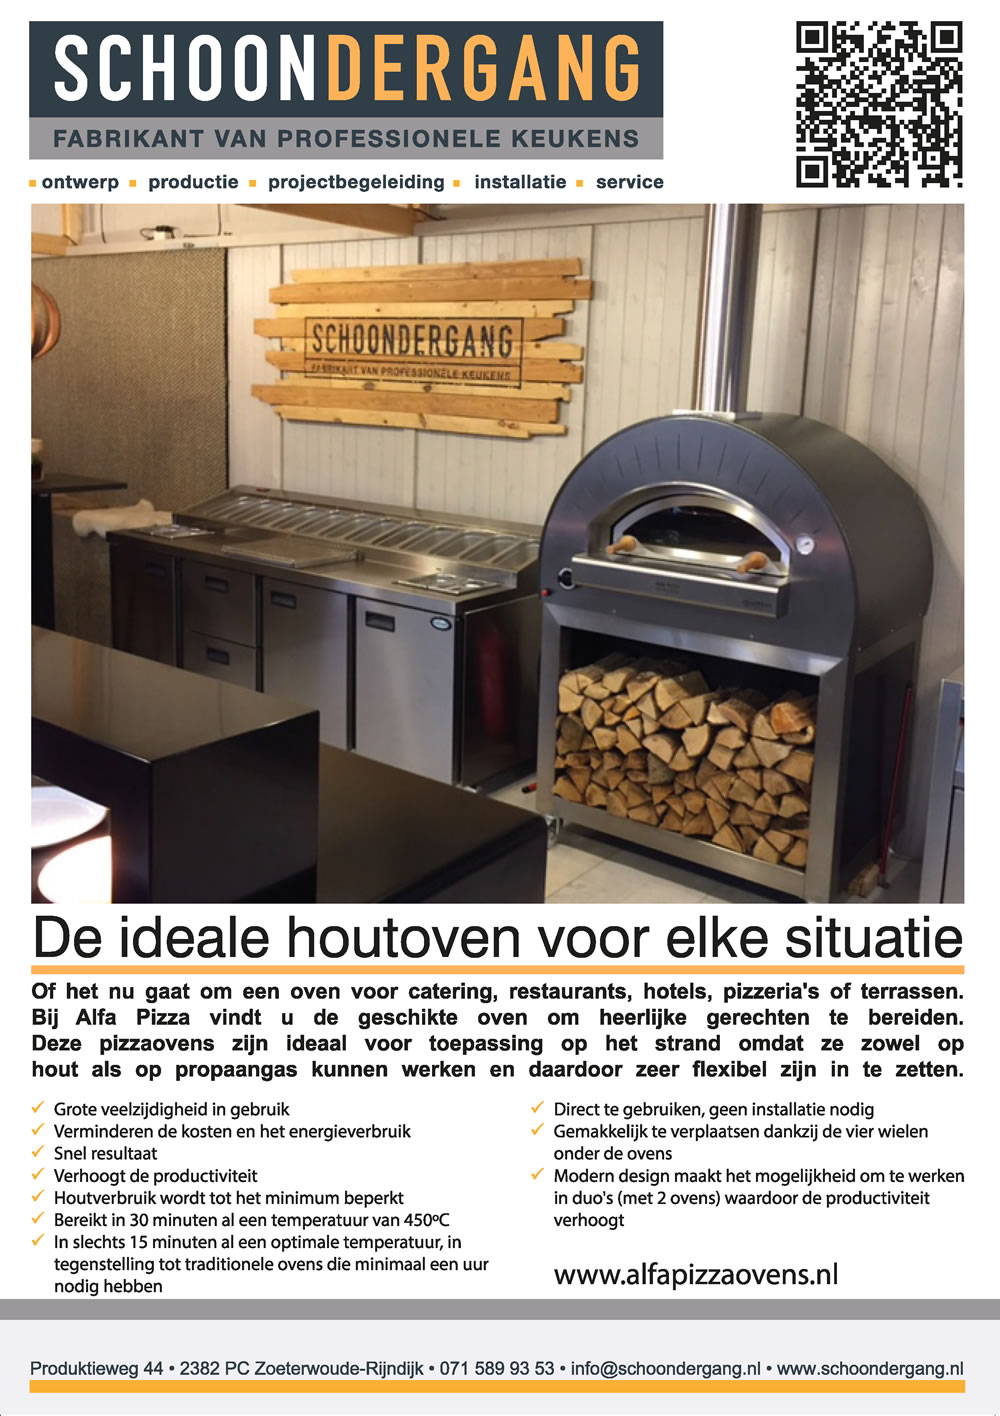 advertentie_alfapizzaovens_A4_vdef.jpg